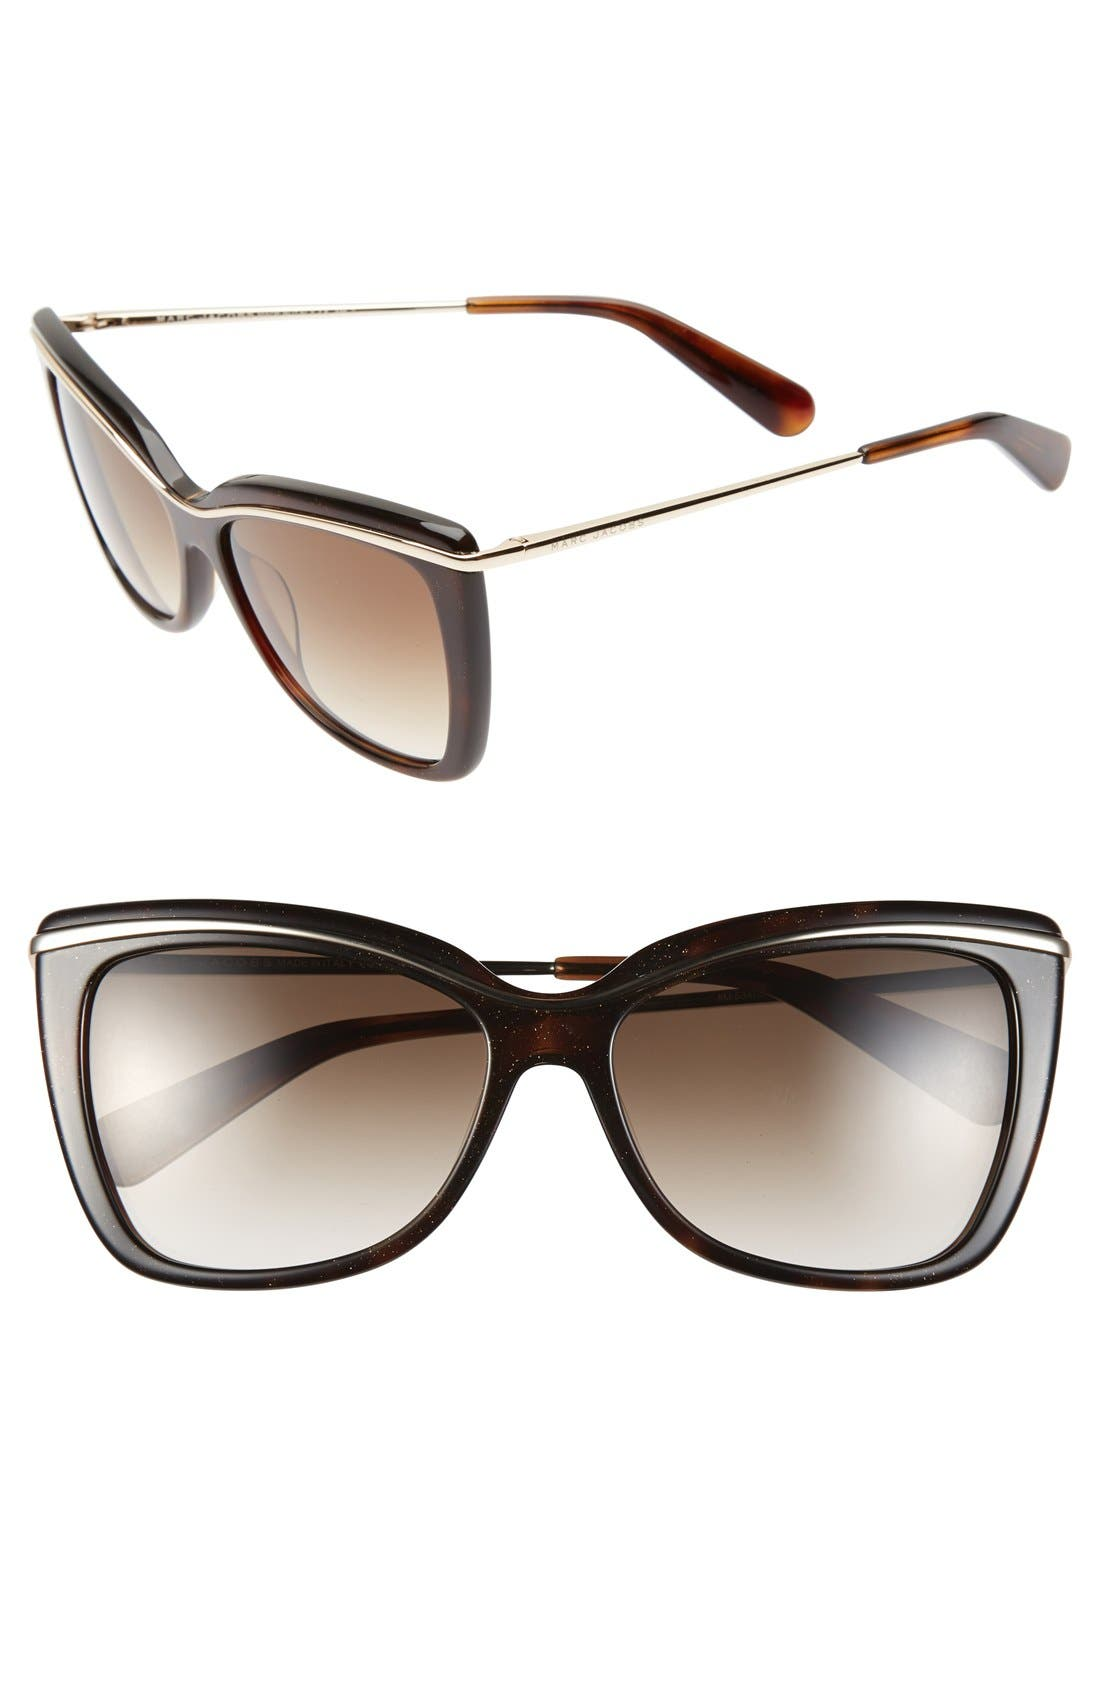 Main Image - MARC JACOBS 56mm Cat Eye Sunglasses